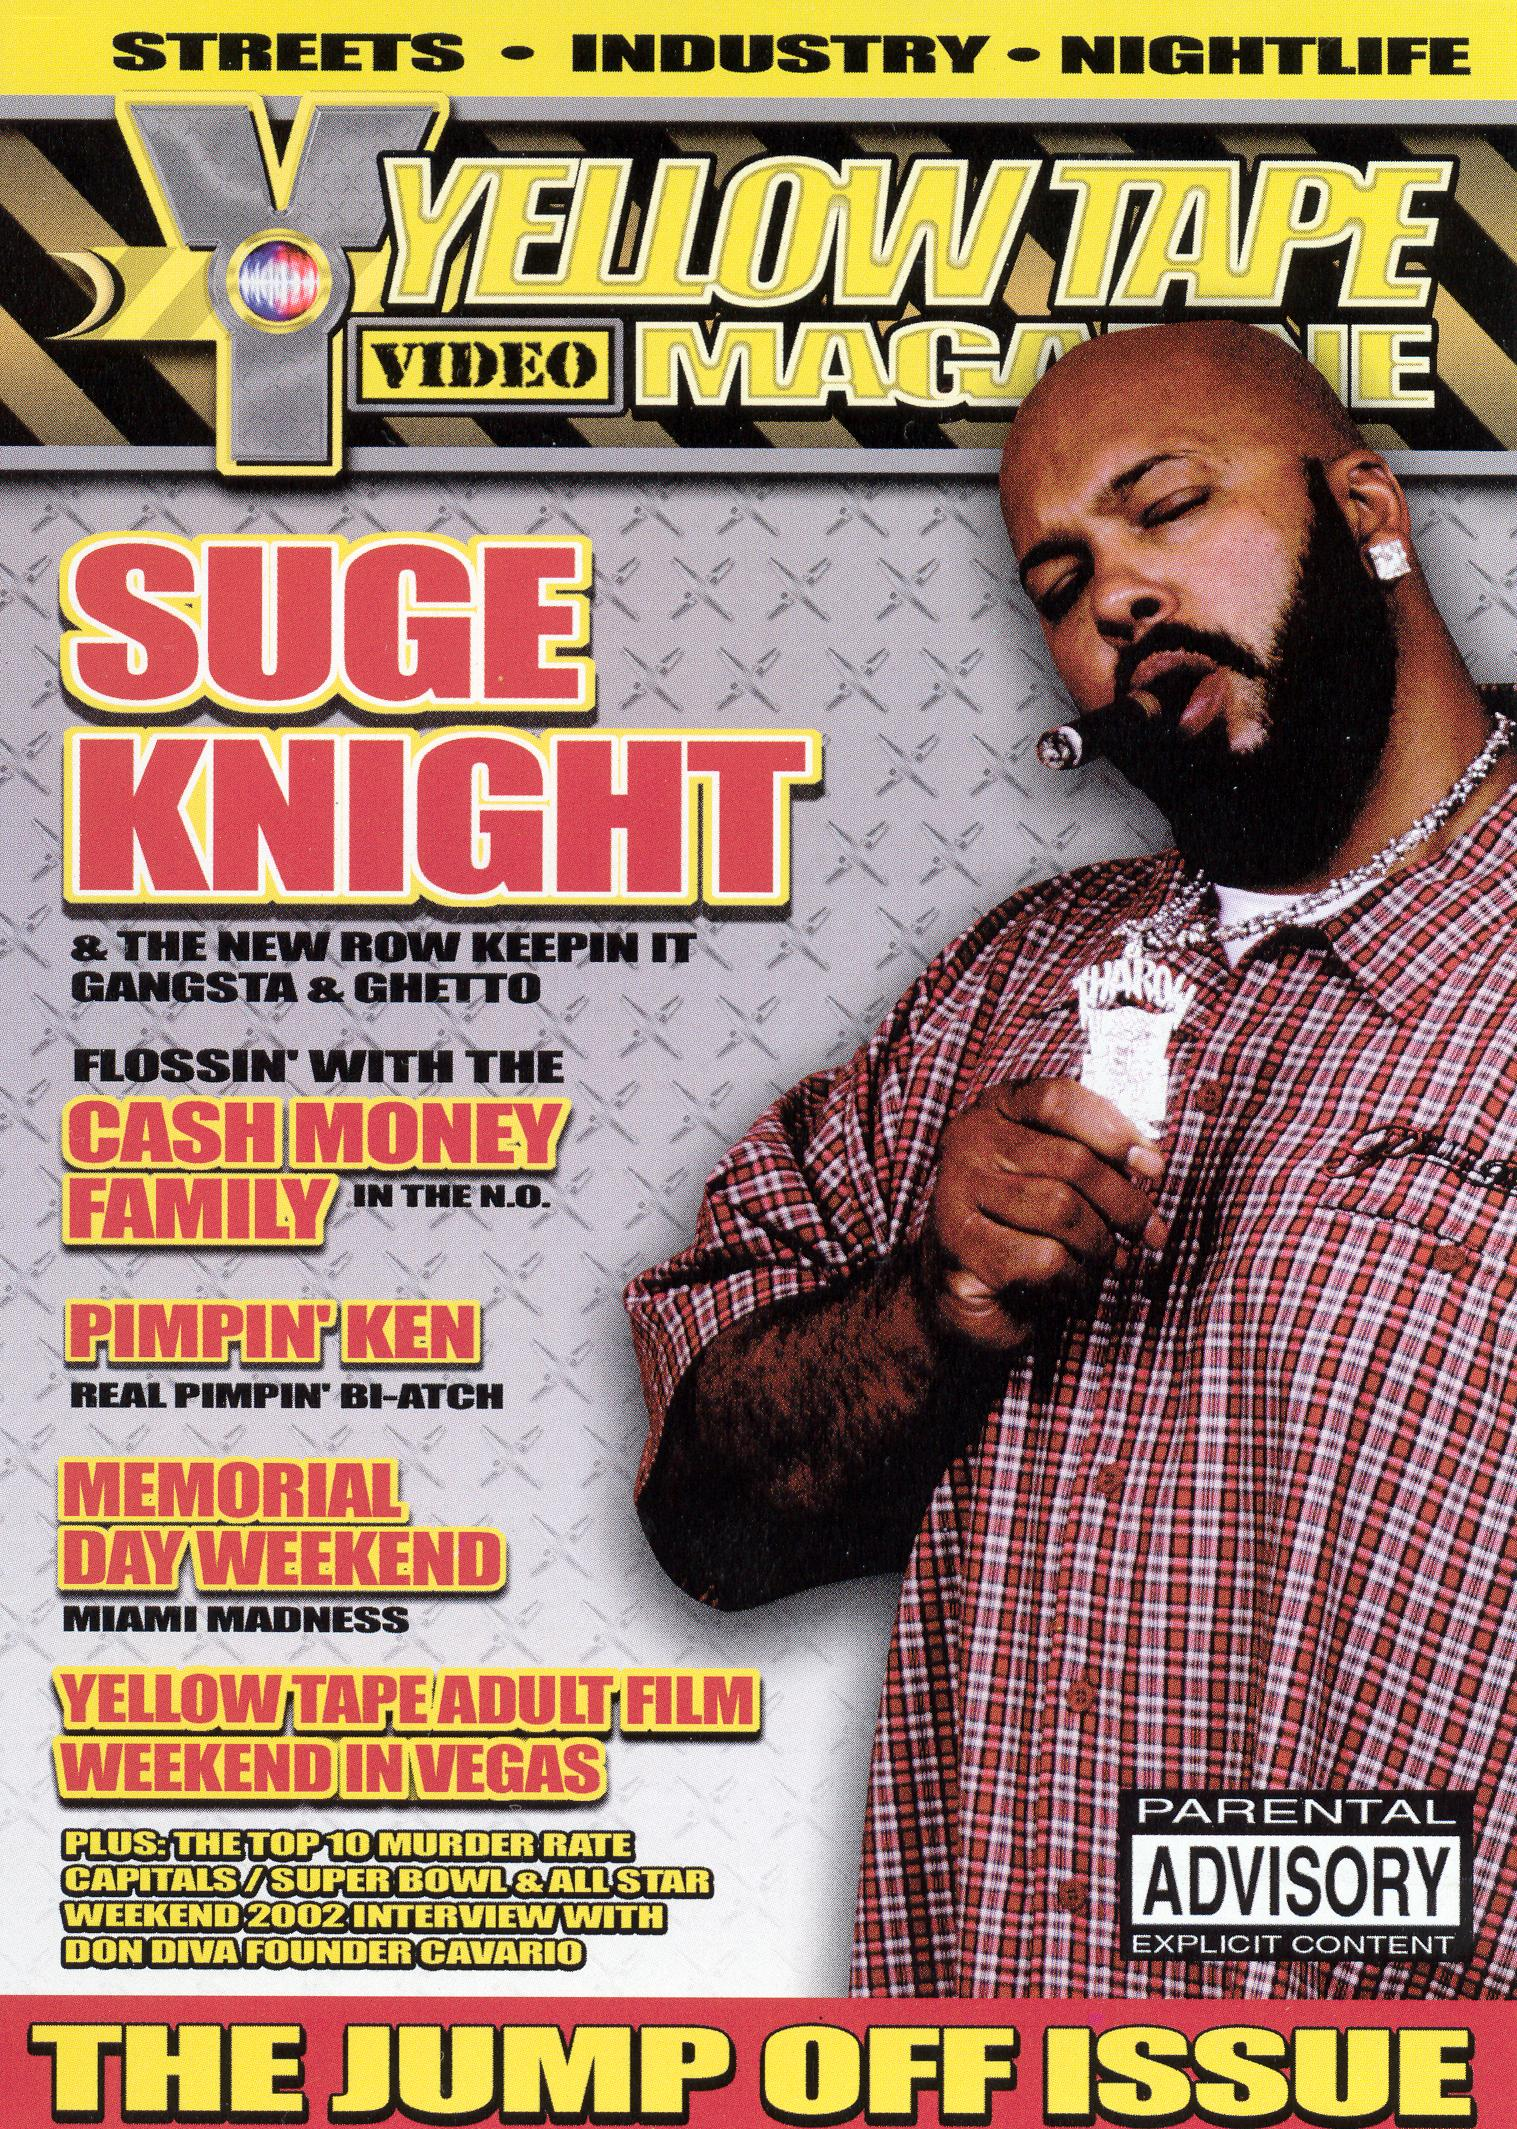 Free suge knight sex videos fucked teens